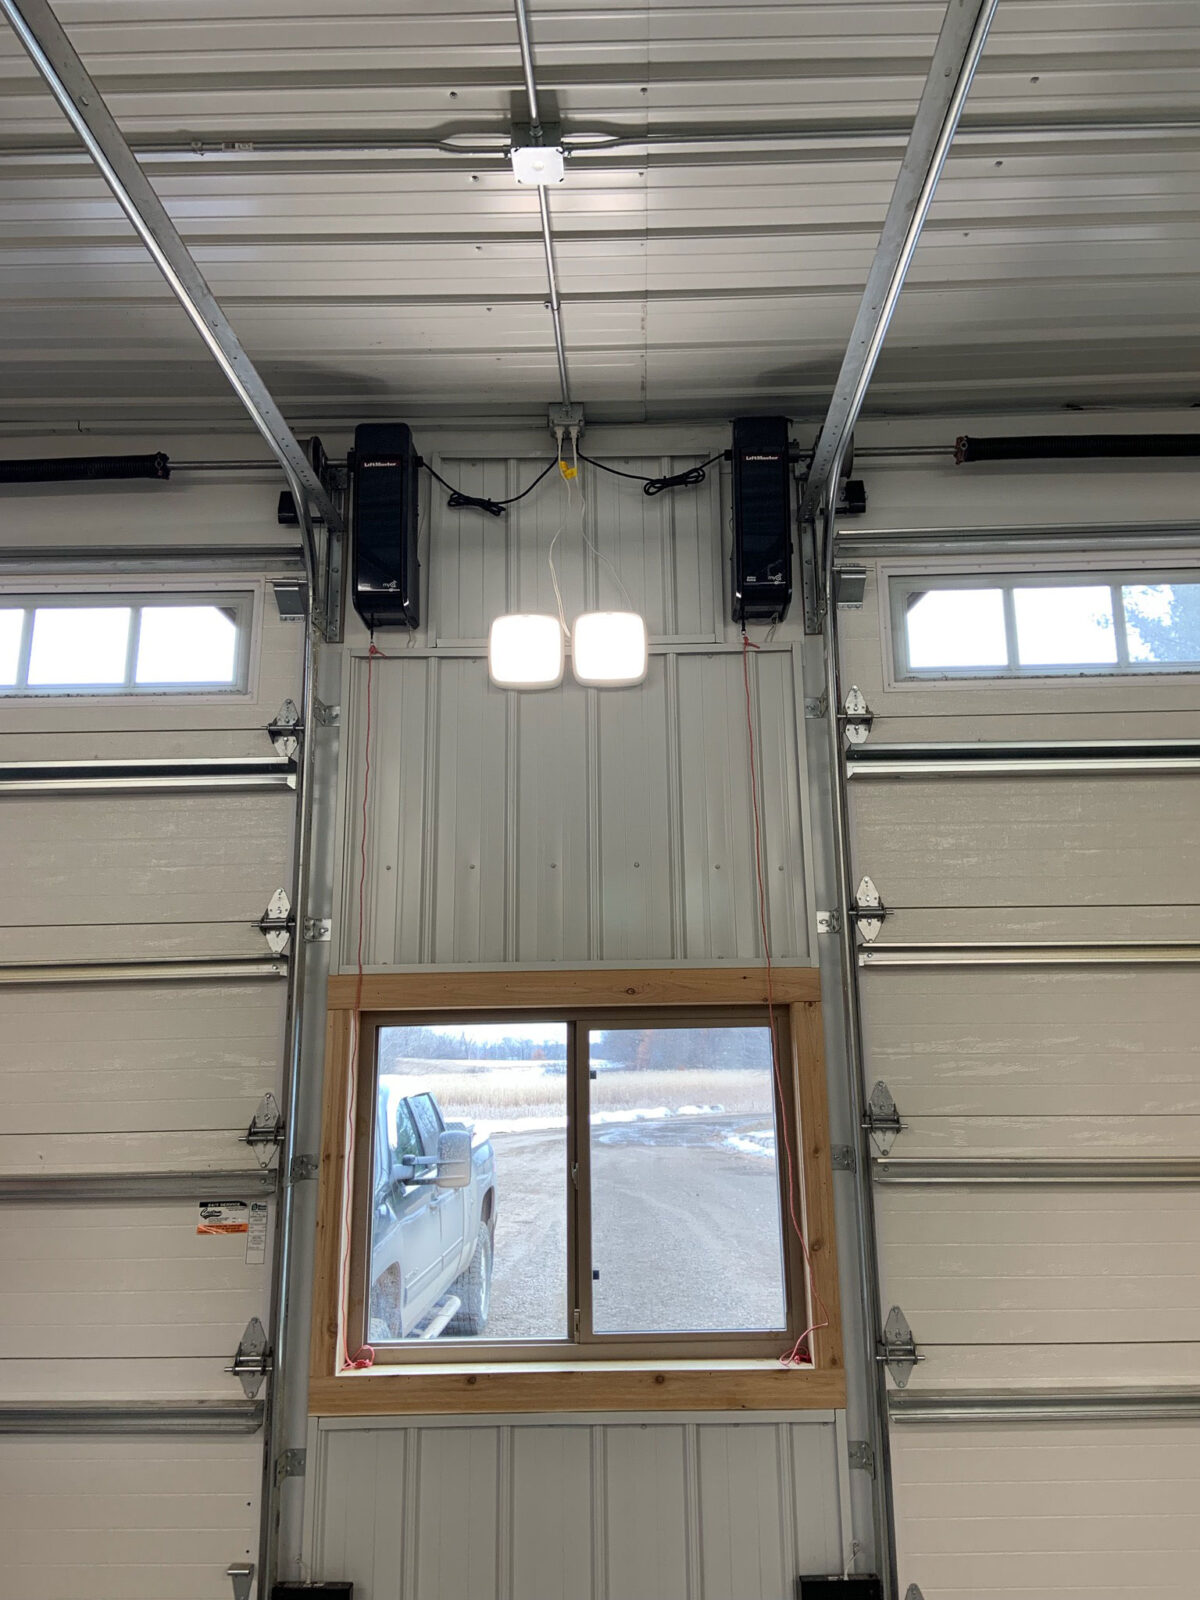 HIGHLIFT TRACK INSTALL WITH SIDE MOUNTED GARAGE DOOR OPENER